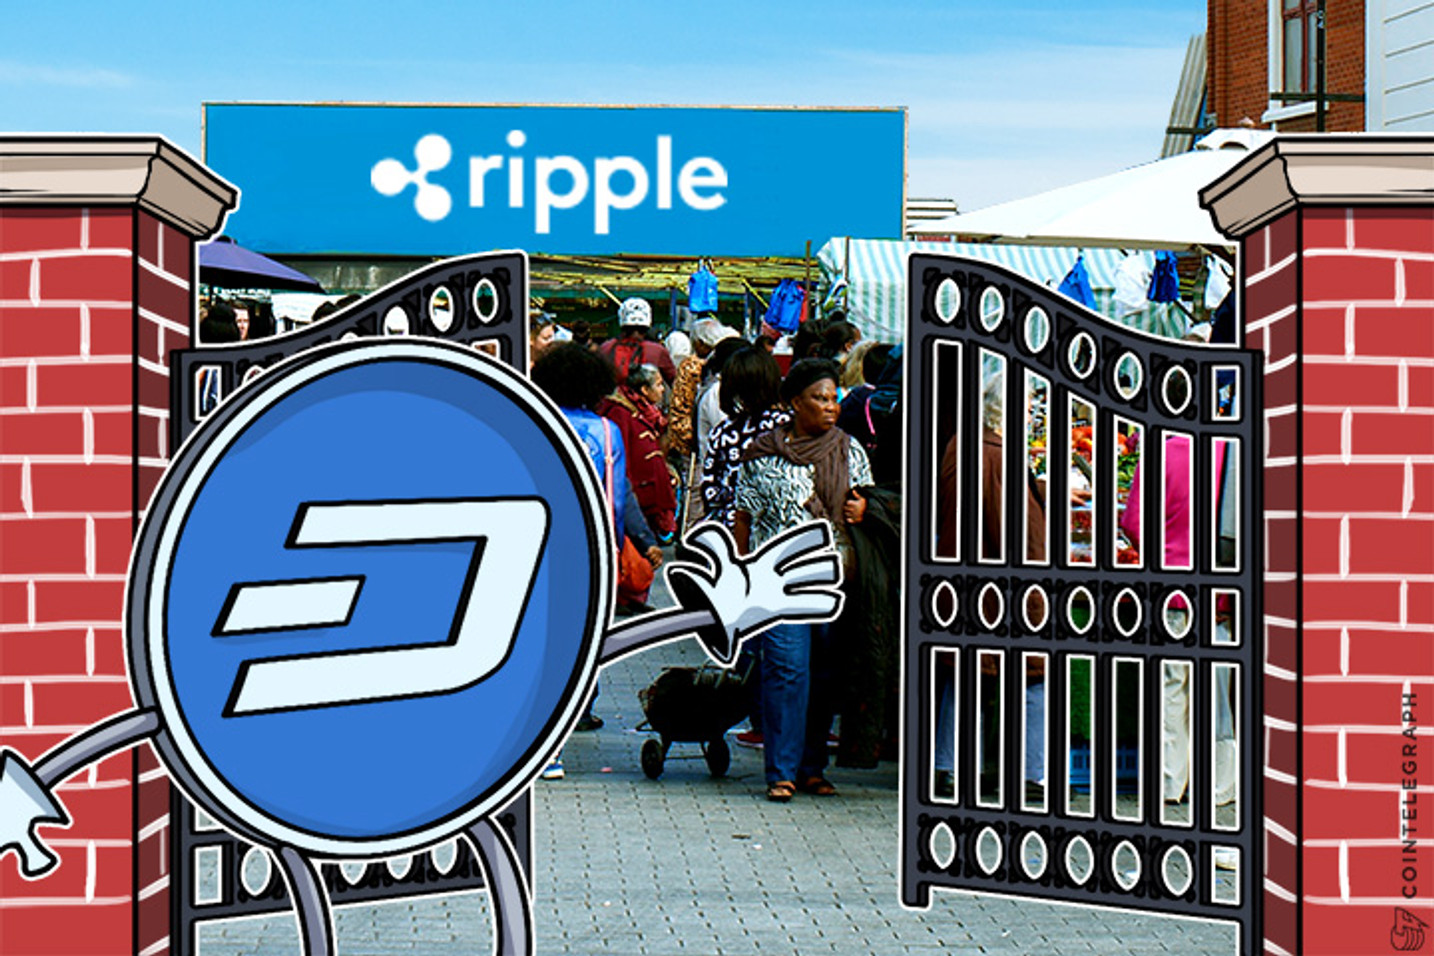 Dash-To-Ripple Gateways Heading to Market: Altcoin Watch